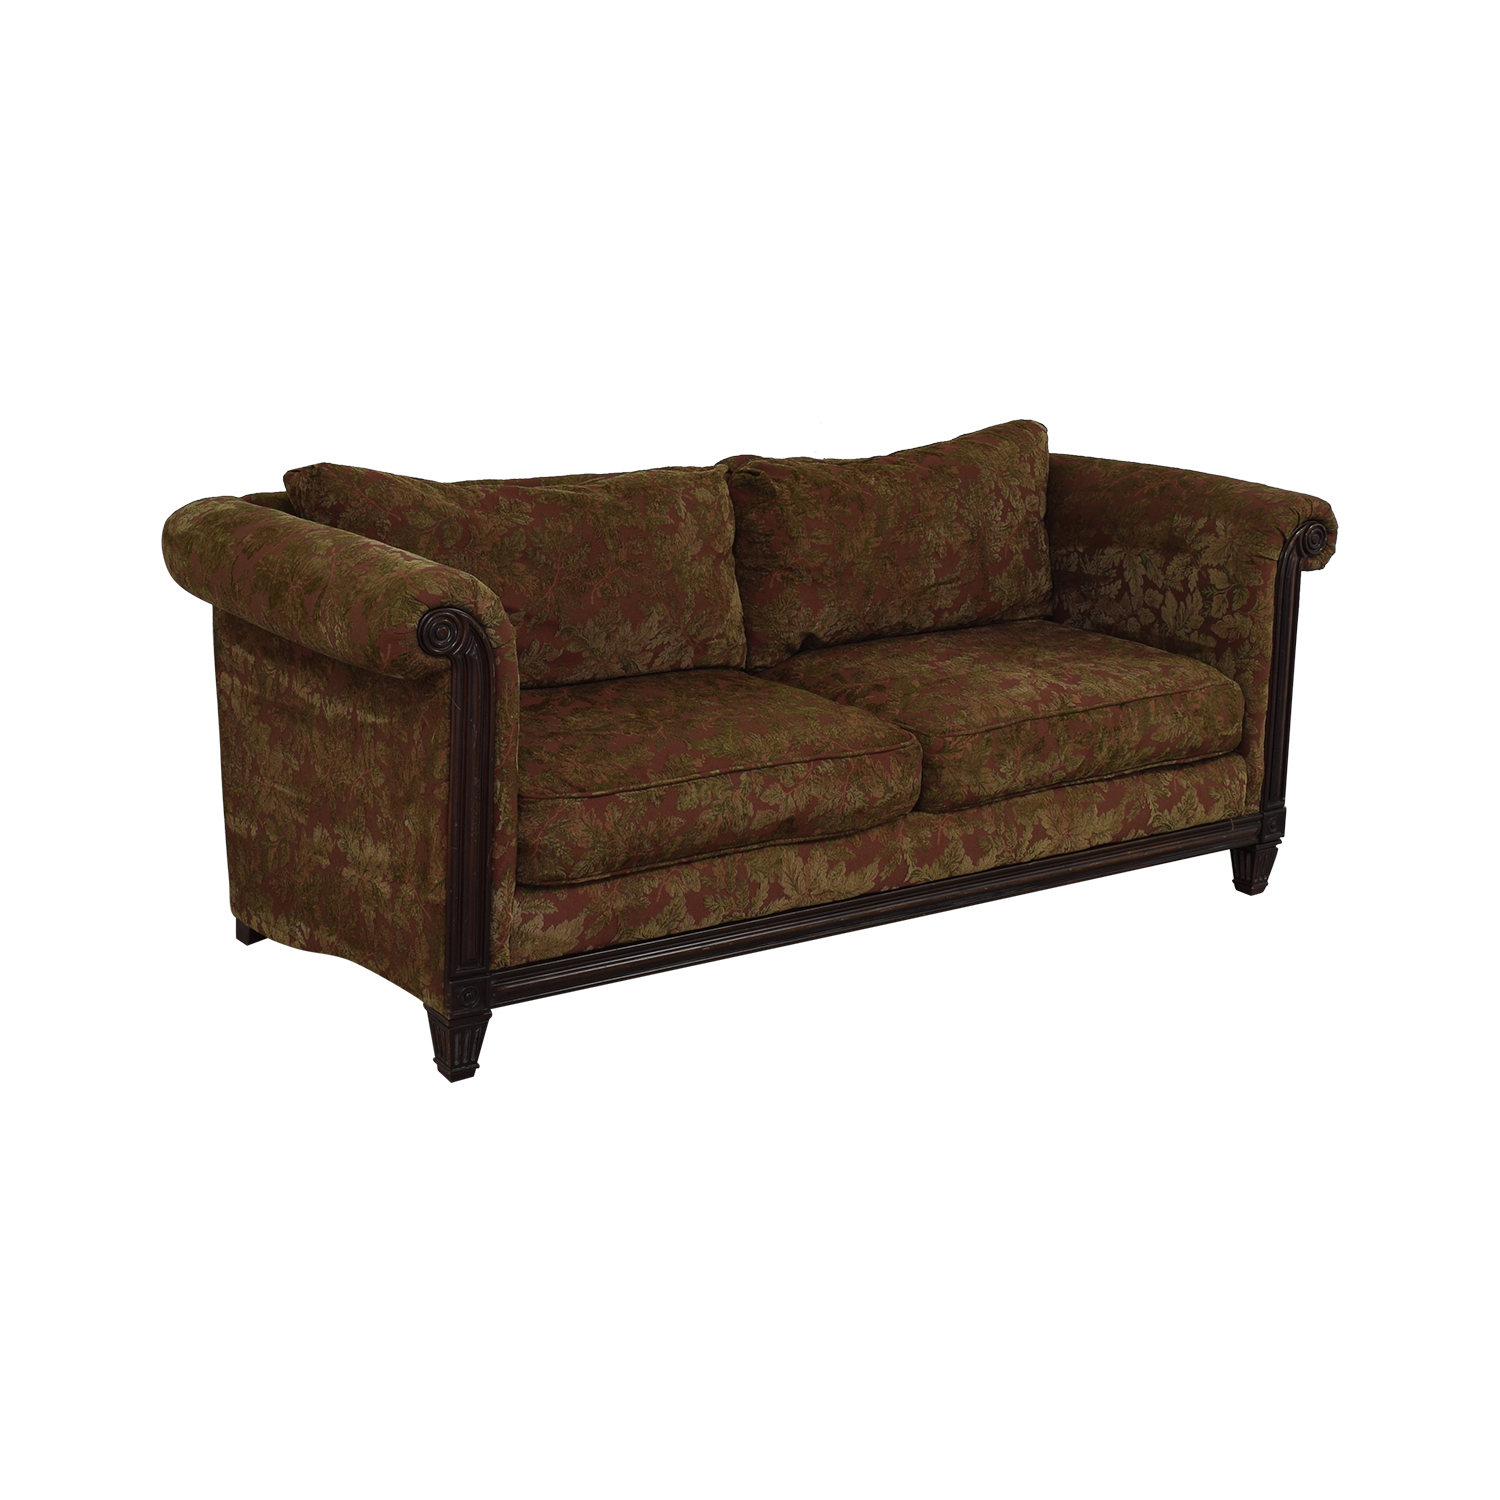 shop Macy's by Bernhardt Two Cushion Sofa Macy's Sofas